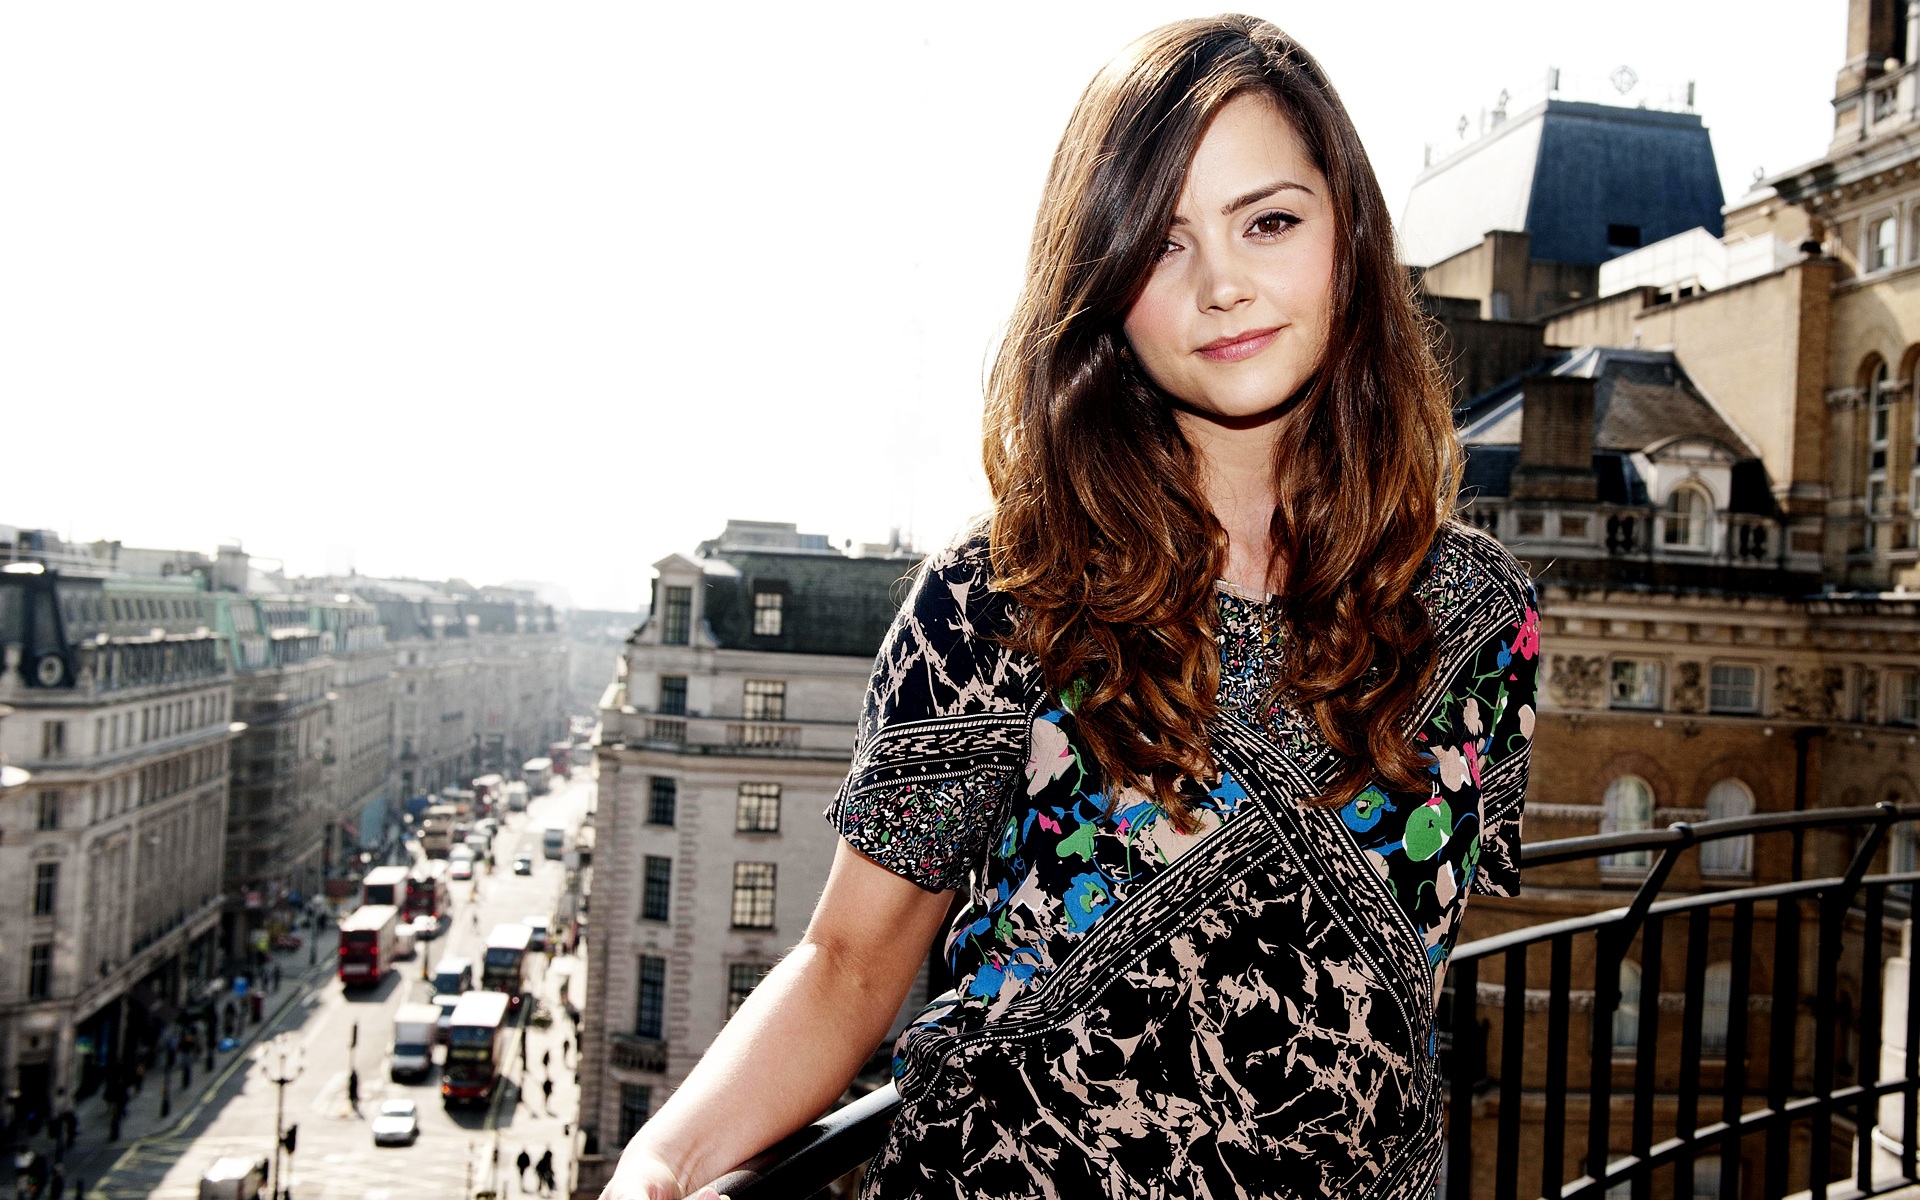 jenna coleman wallpaper 57830